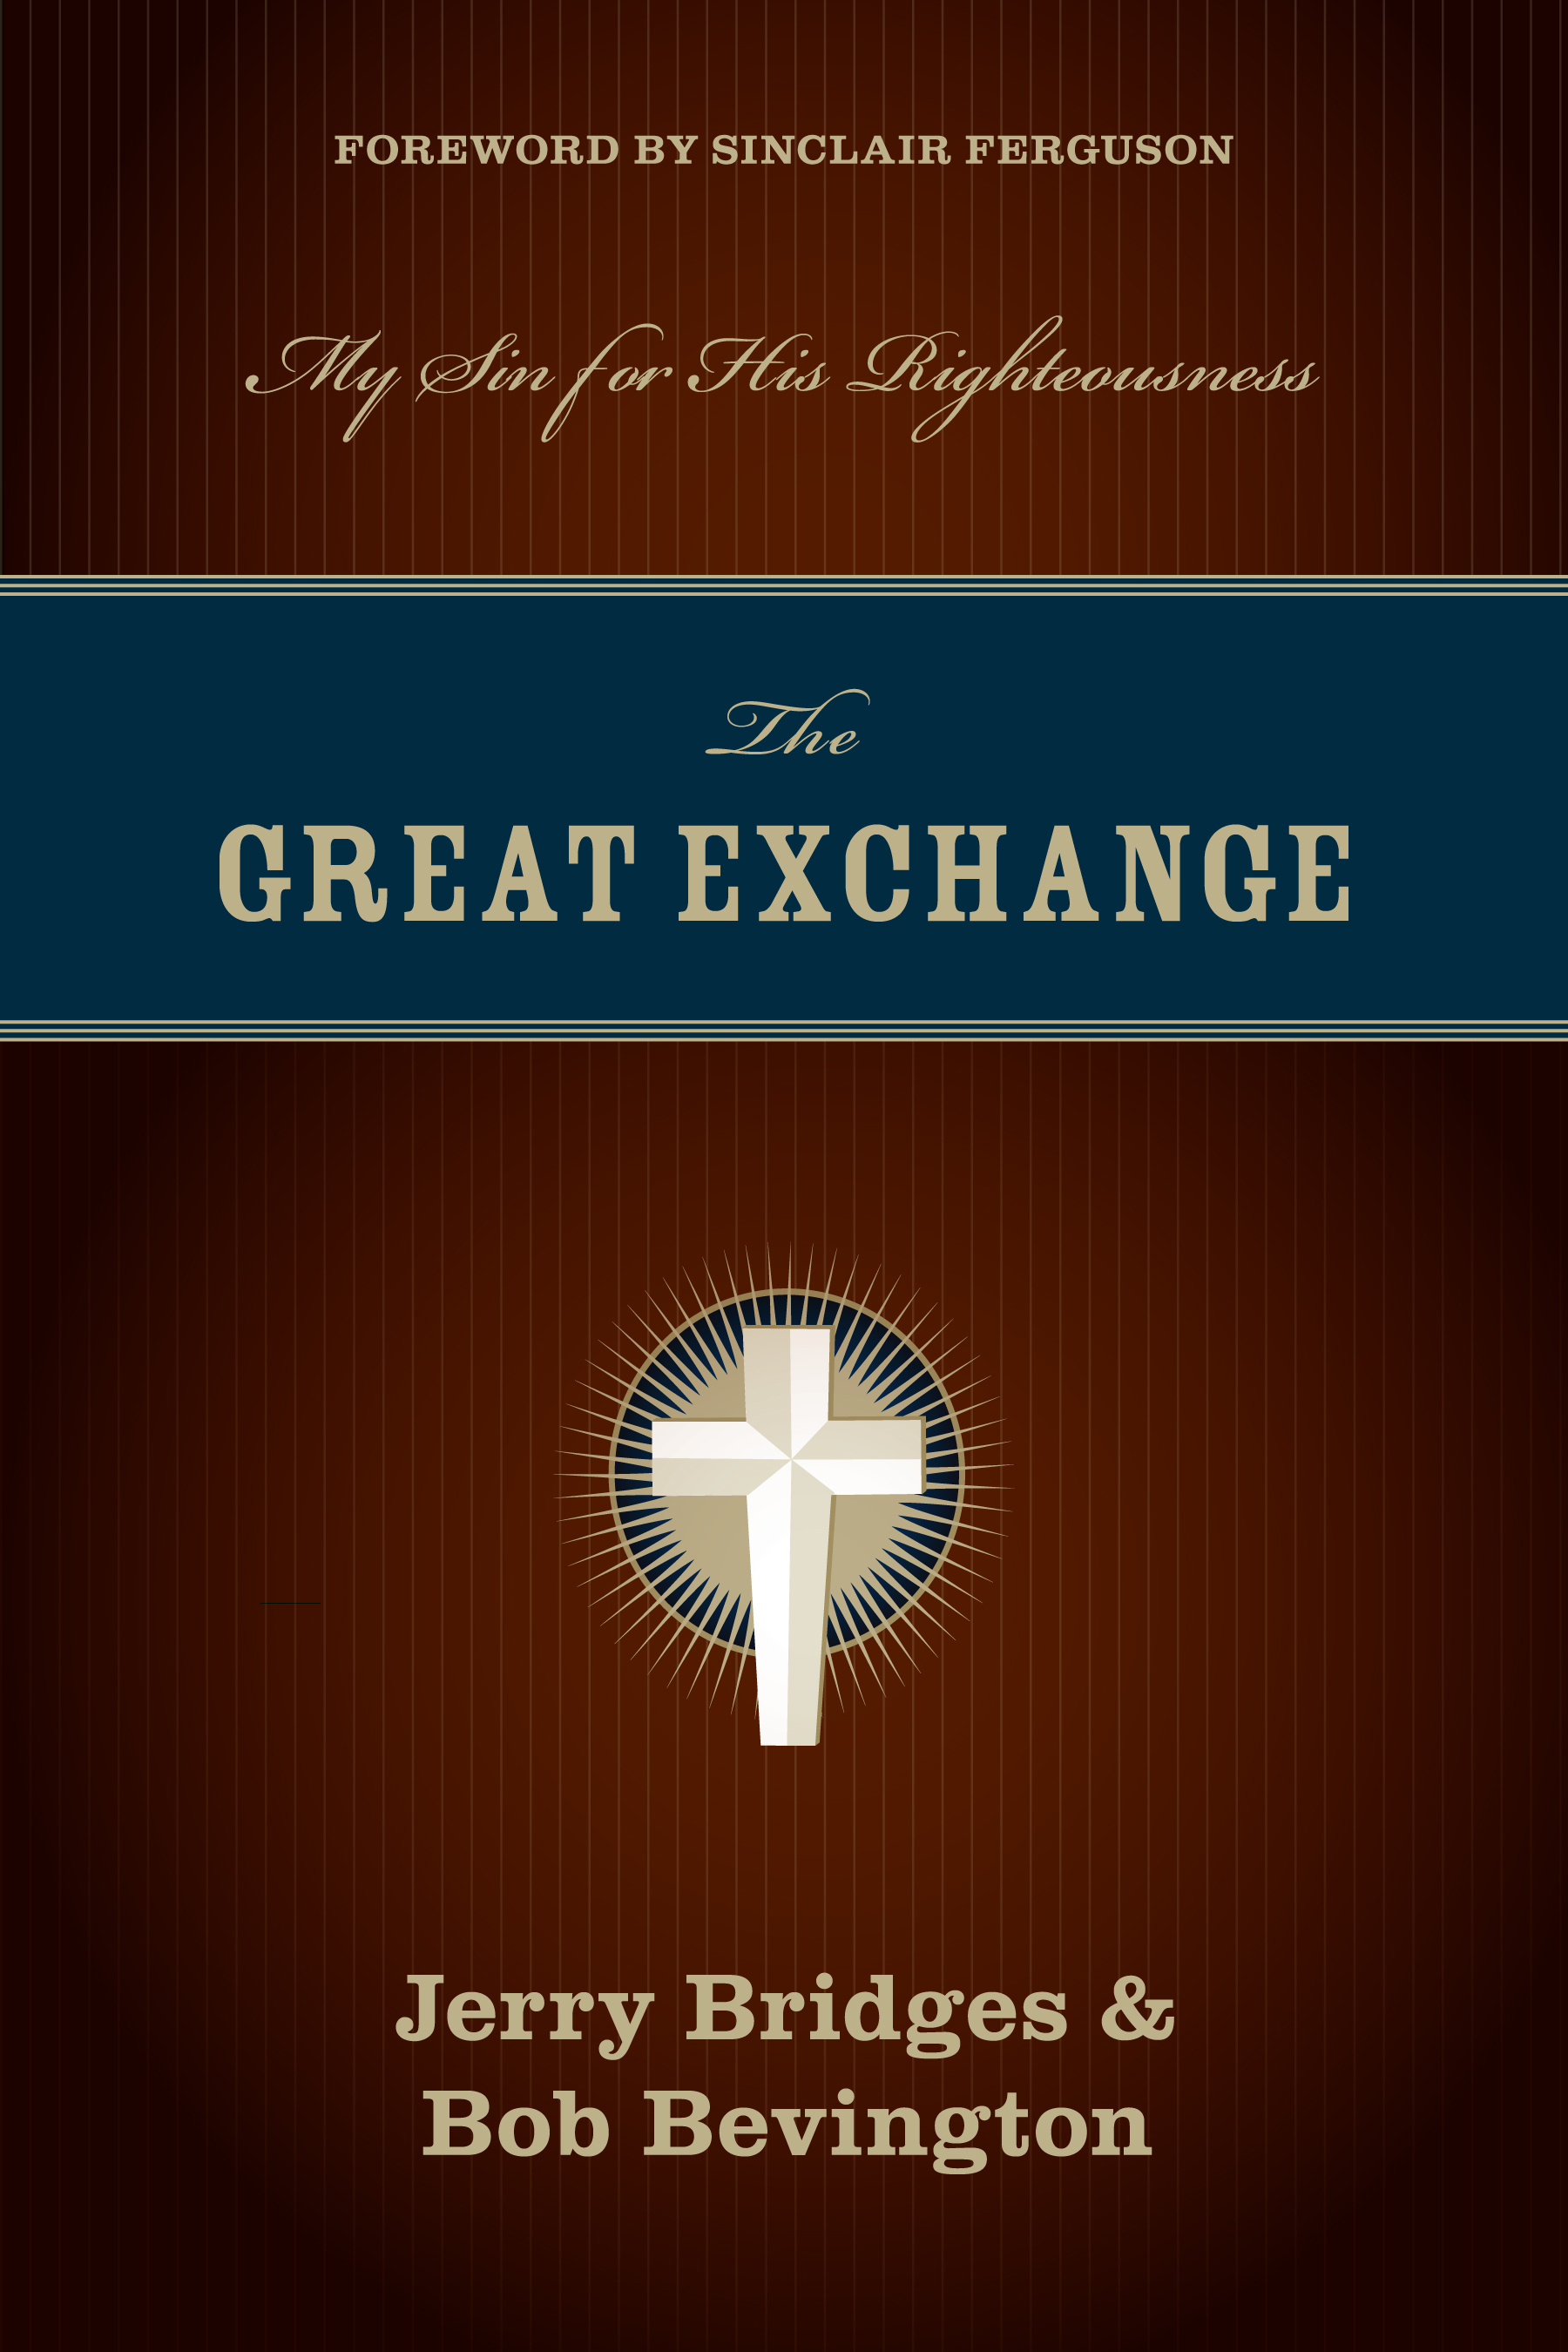 The Great Exchange (Foreword by Sinclair Ferguson) My Sin for His Righteousness